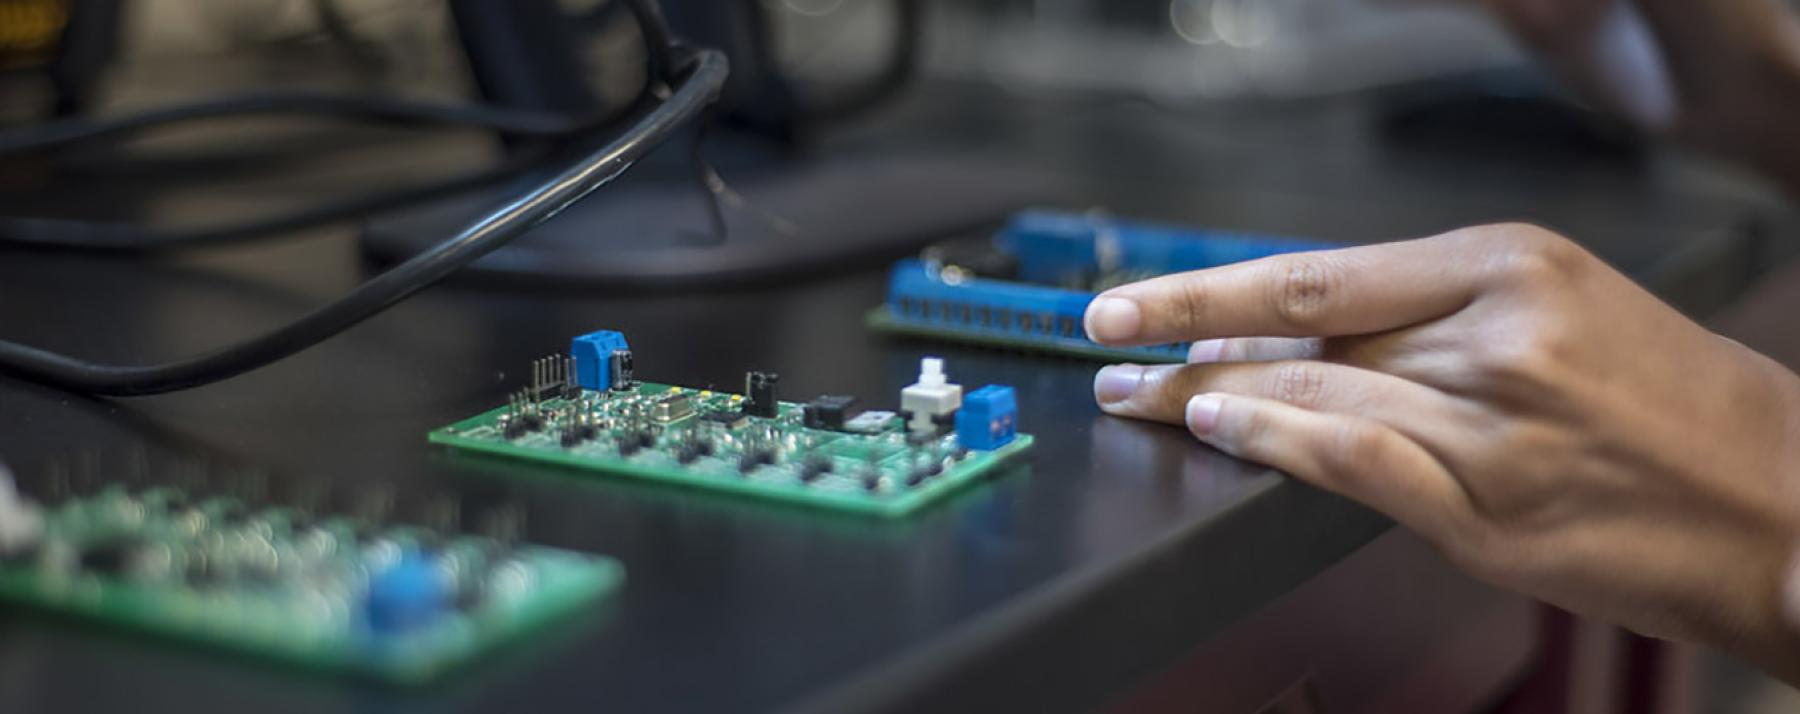 hand holding circuit boards